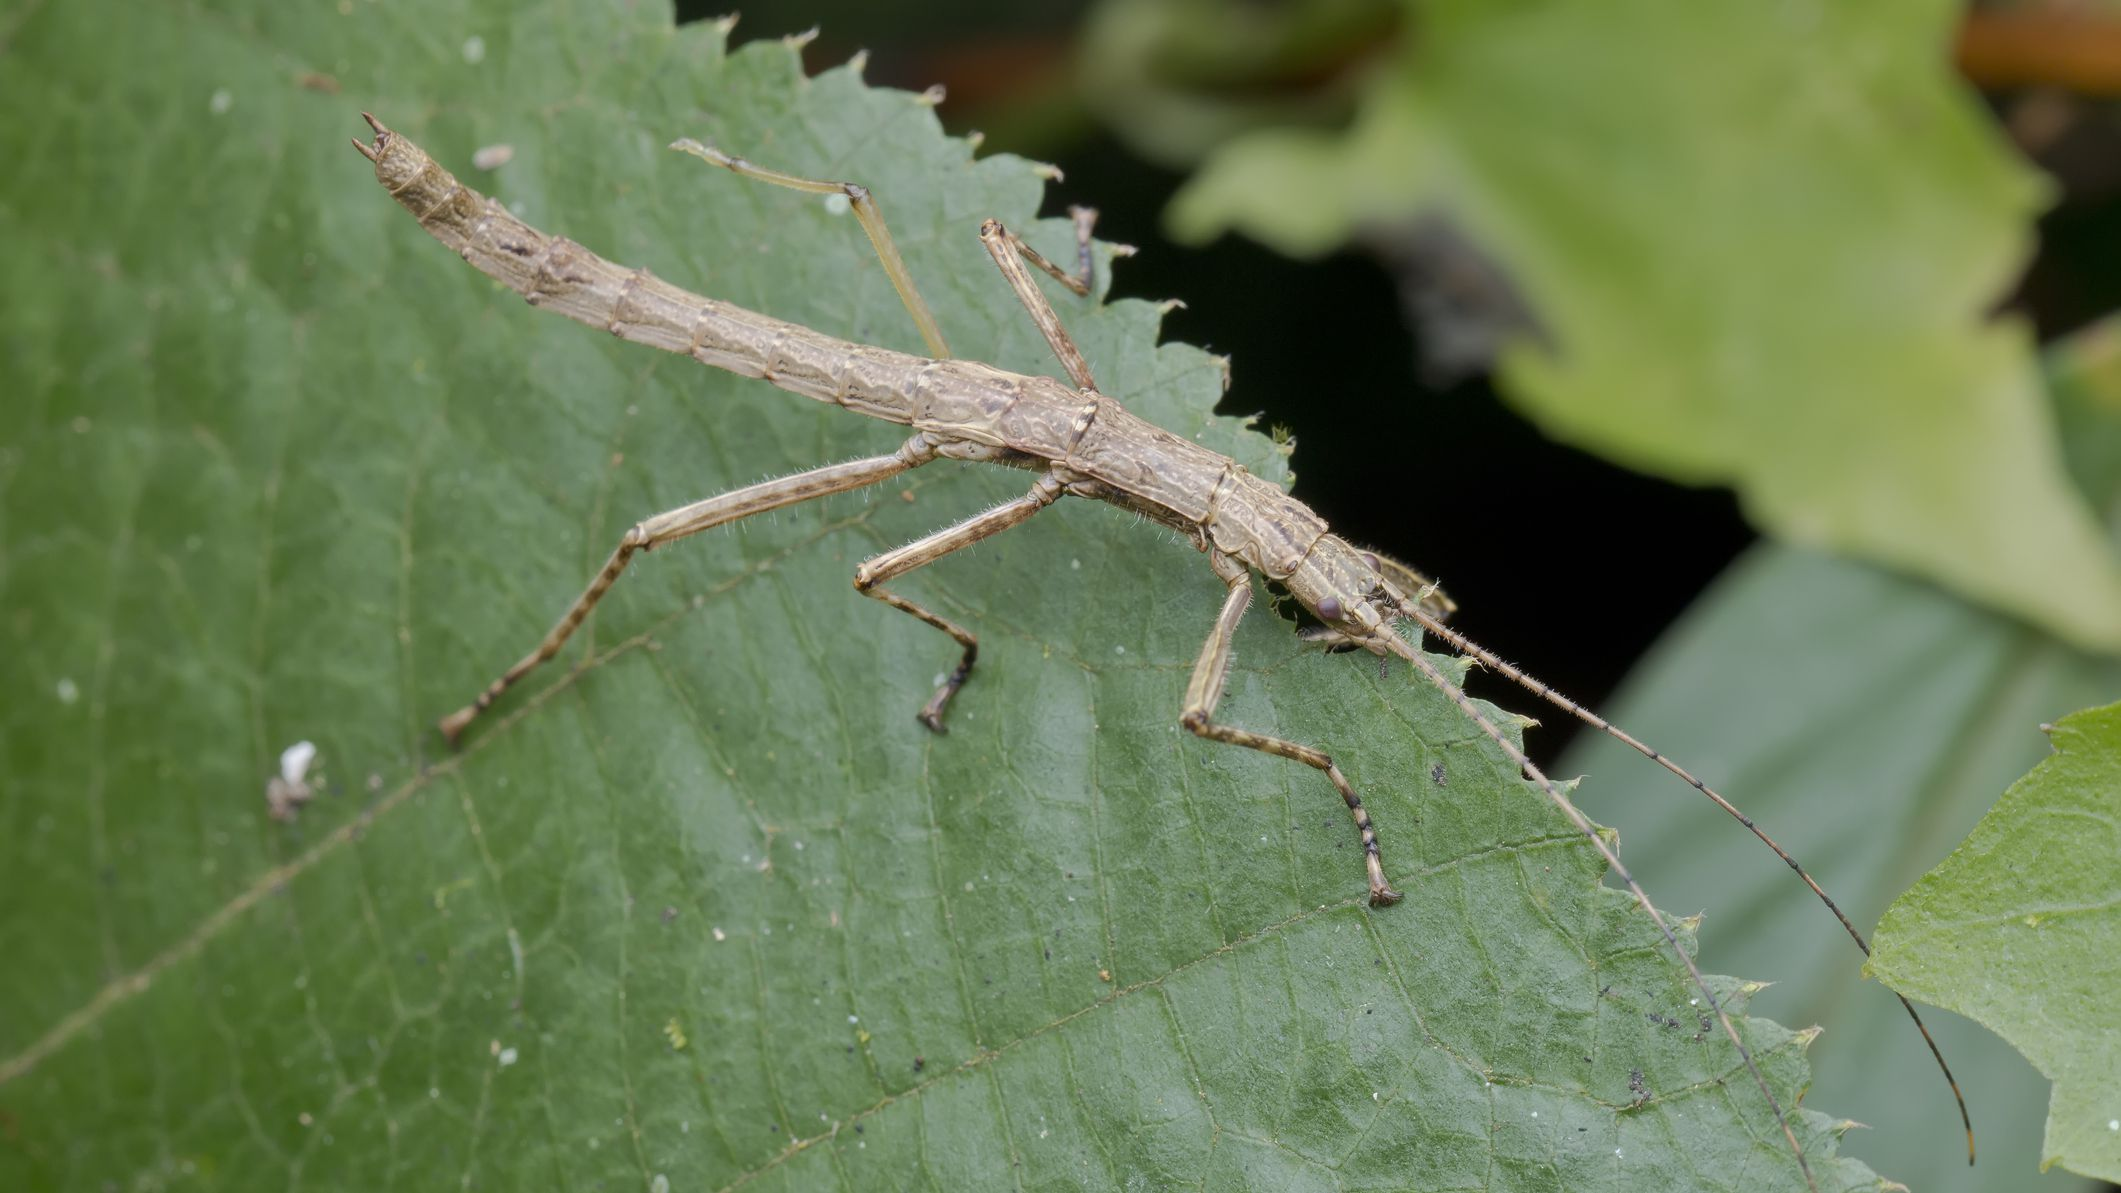 Keeping and Caring for Stick Insects as Pets